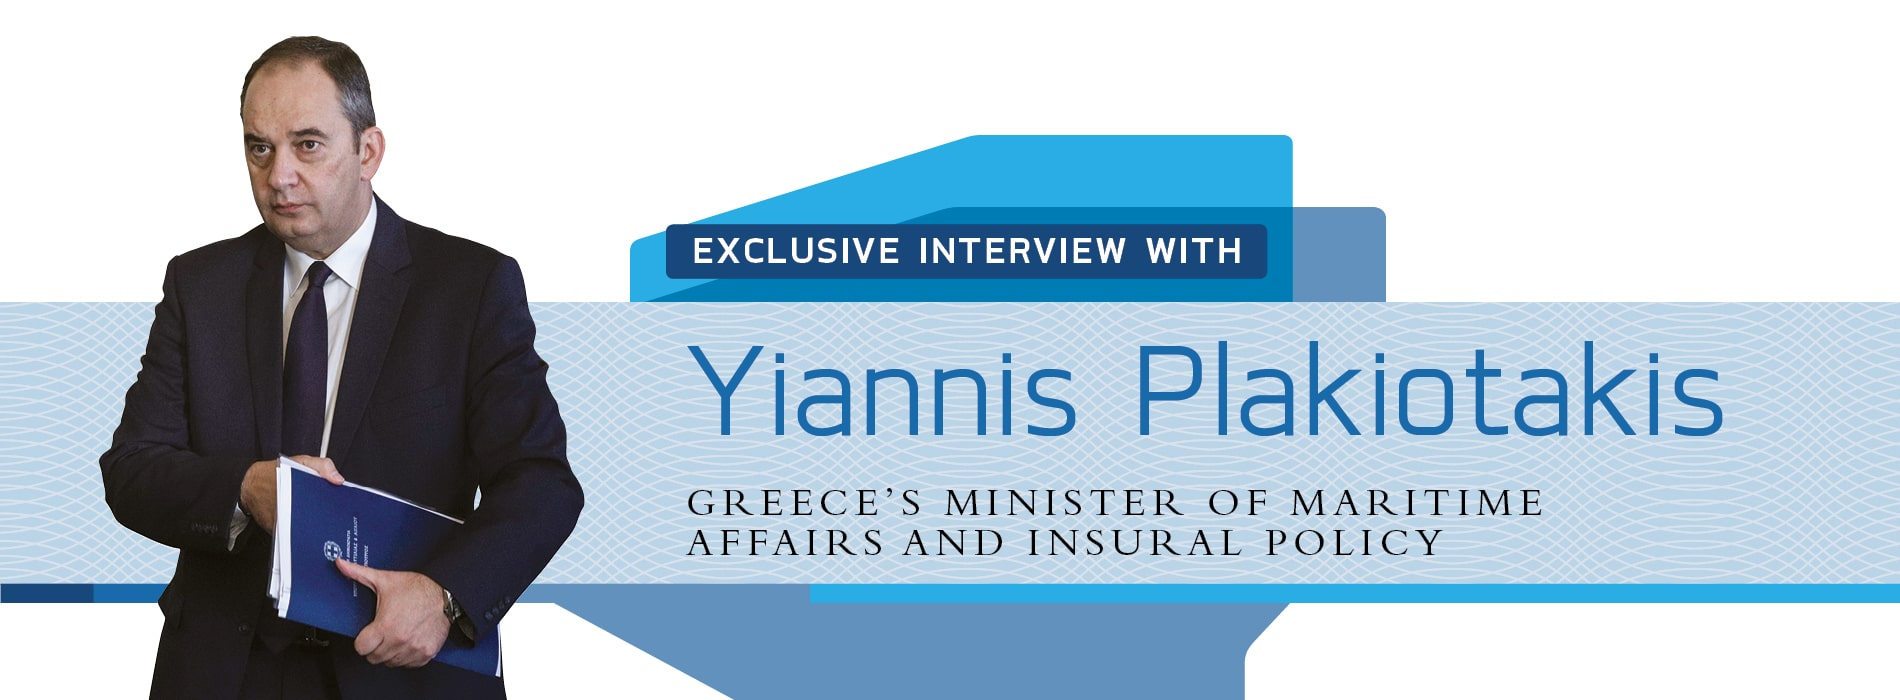 Interview with Yiannis Plakiotakis,Greece's Minister of Maritime Affairs